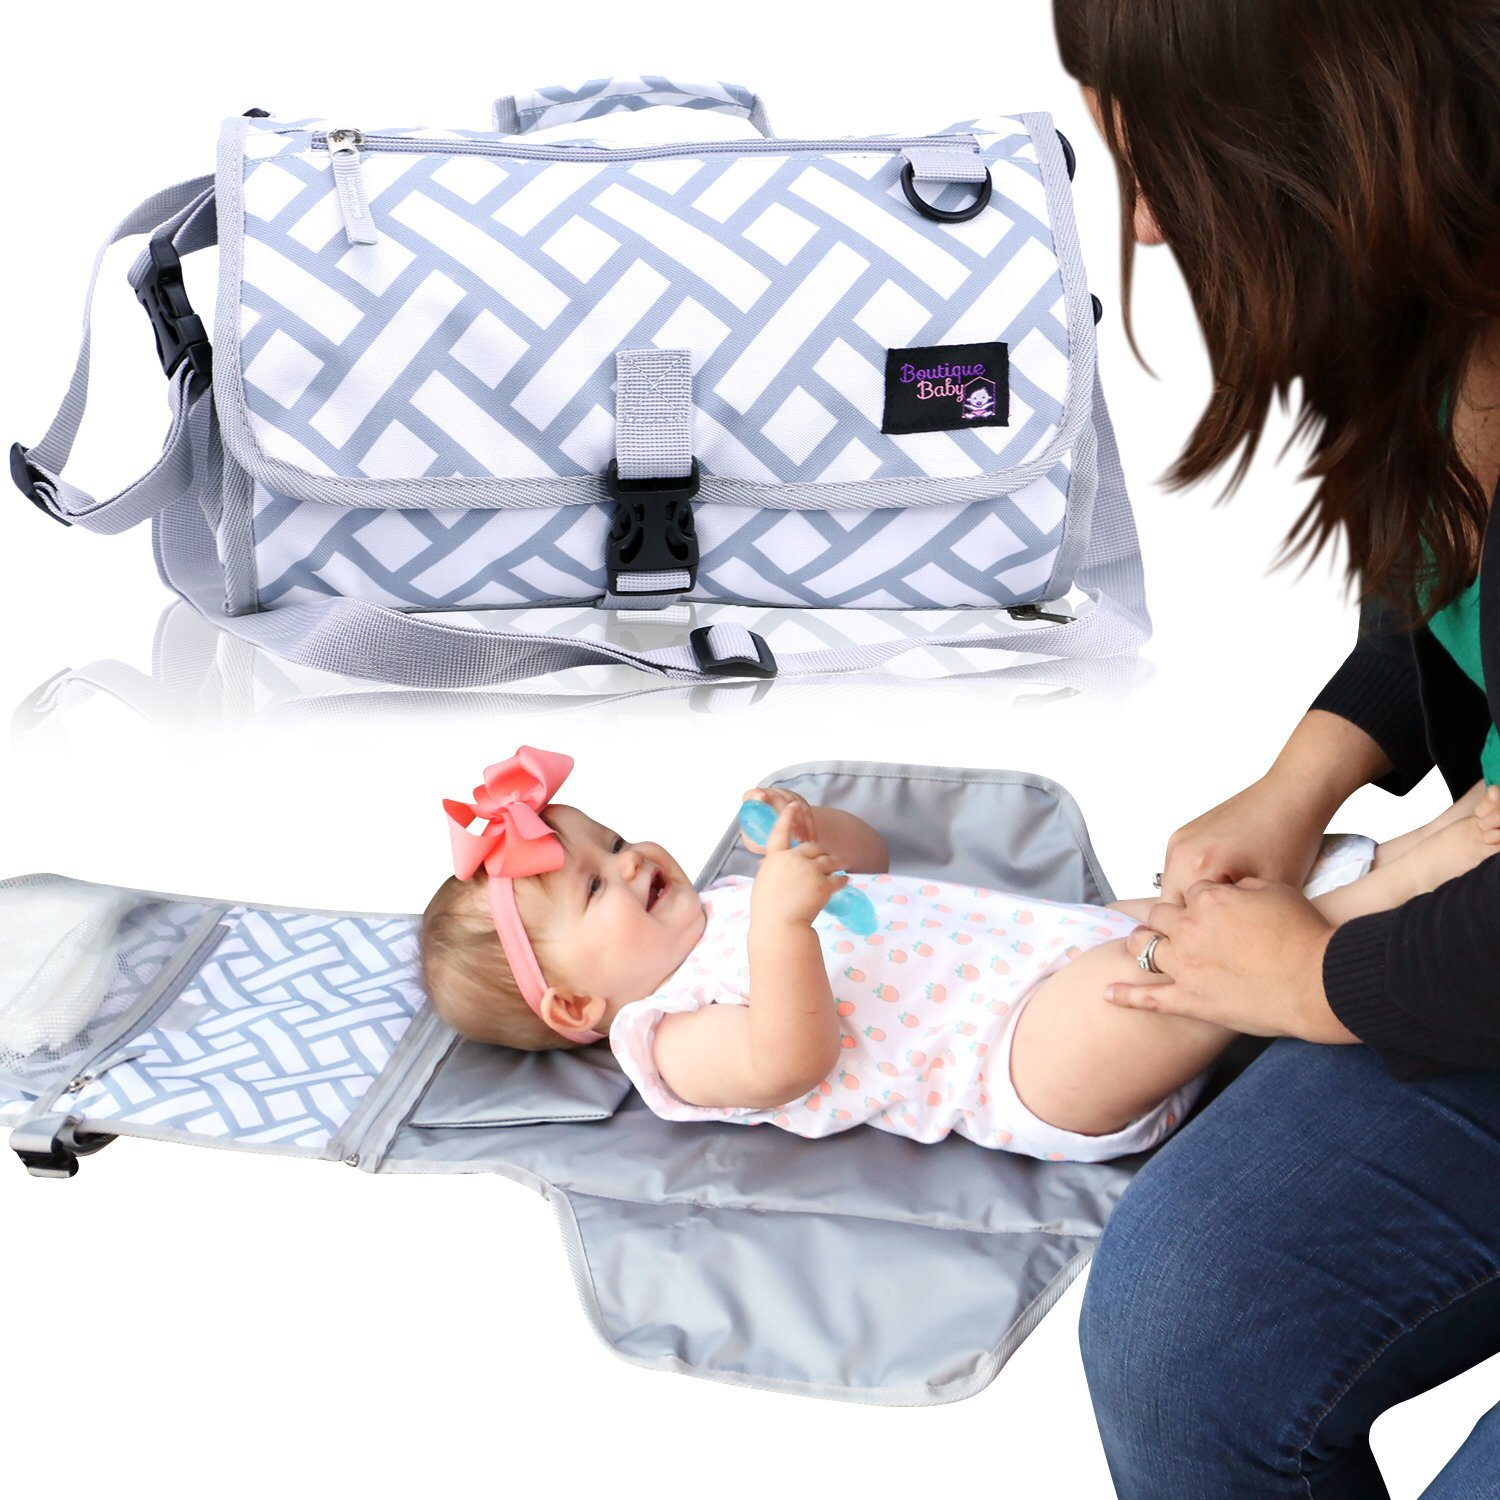 Baby Changing Pad By Boutique Baby Portable Diaper Changing Pad Station Waterproof Extra Long  Travel Clutch by Boutique Baby (Image #8)